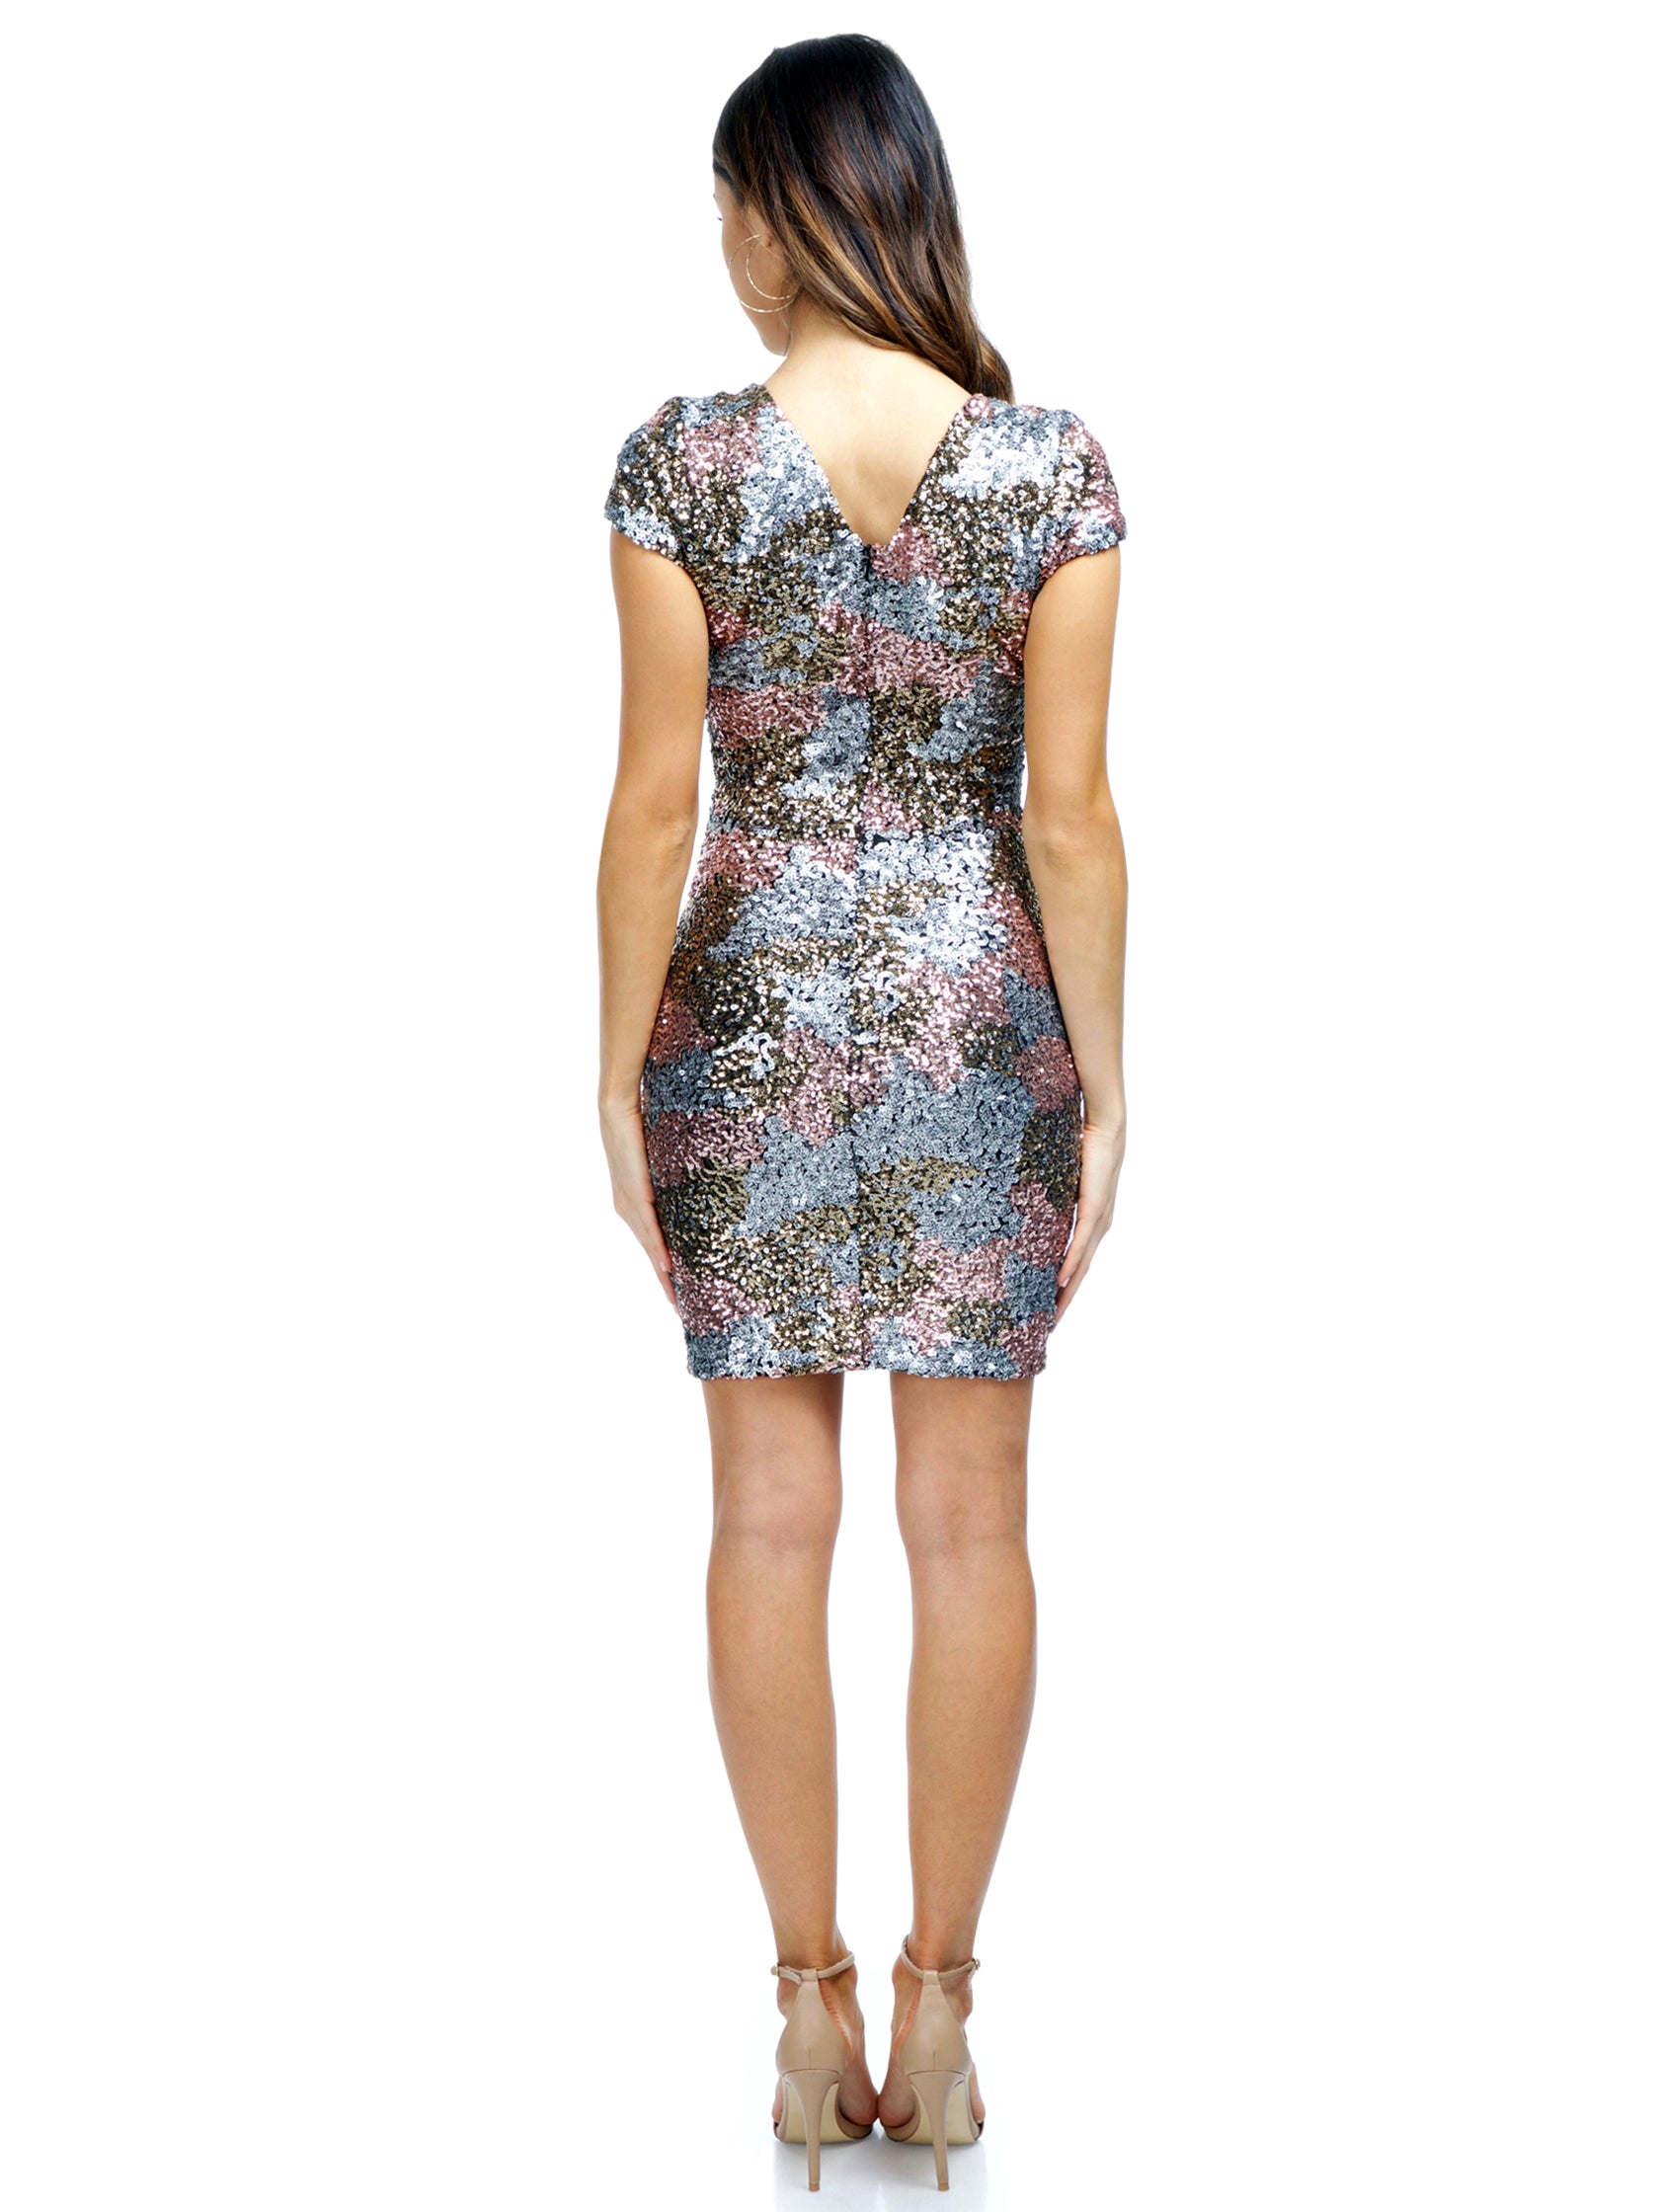 Women wearing a dress rental from Dress the Population called Victoria Sequin Dress